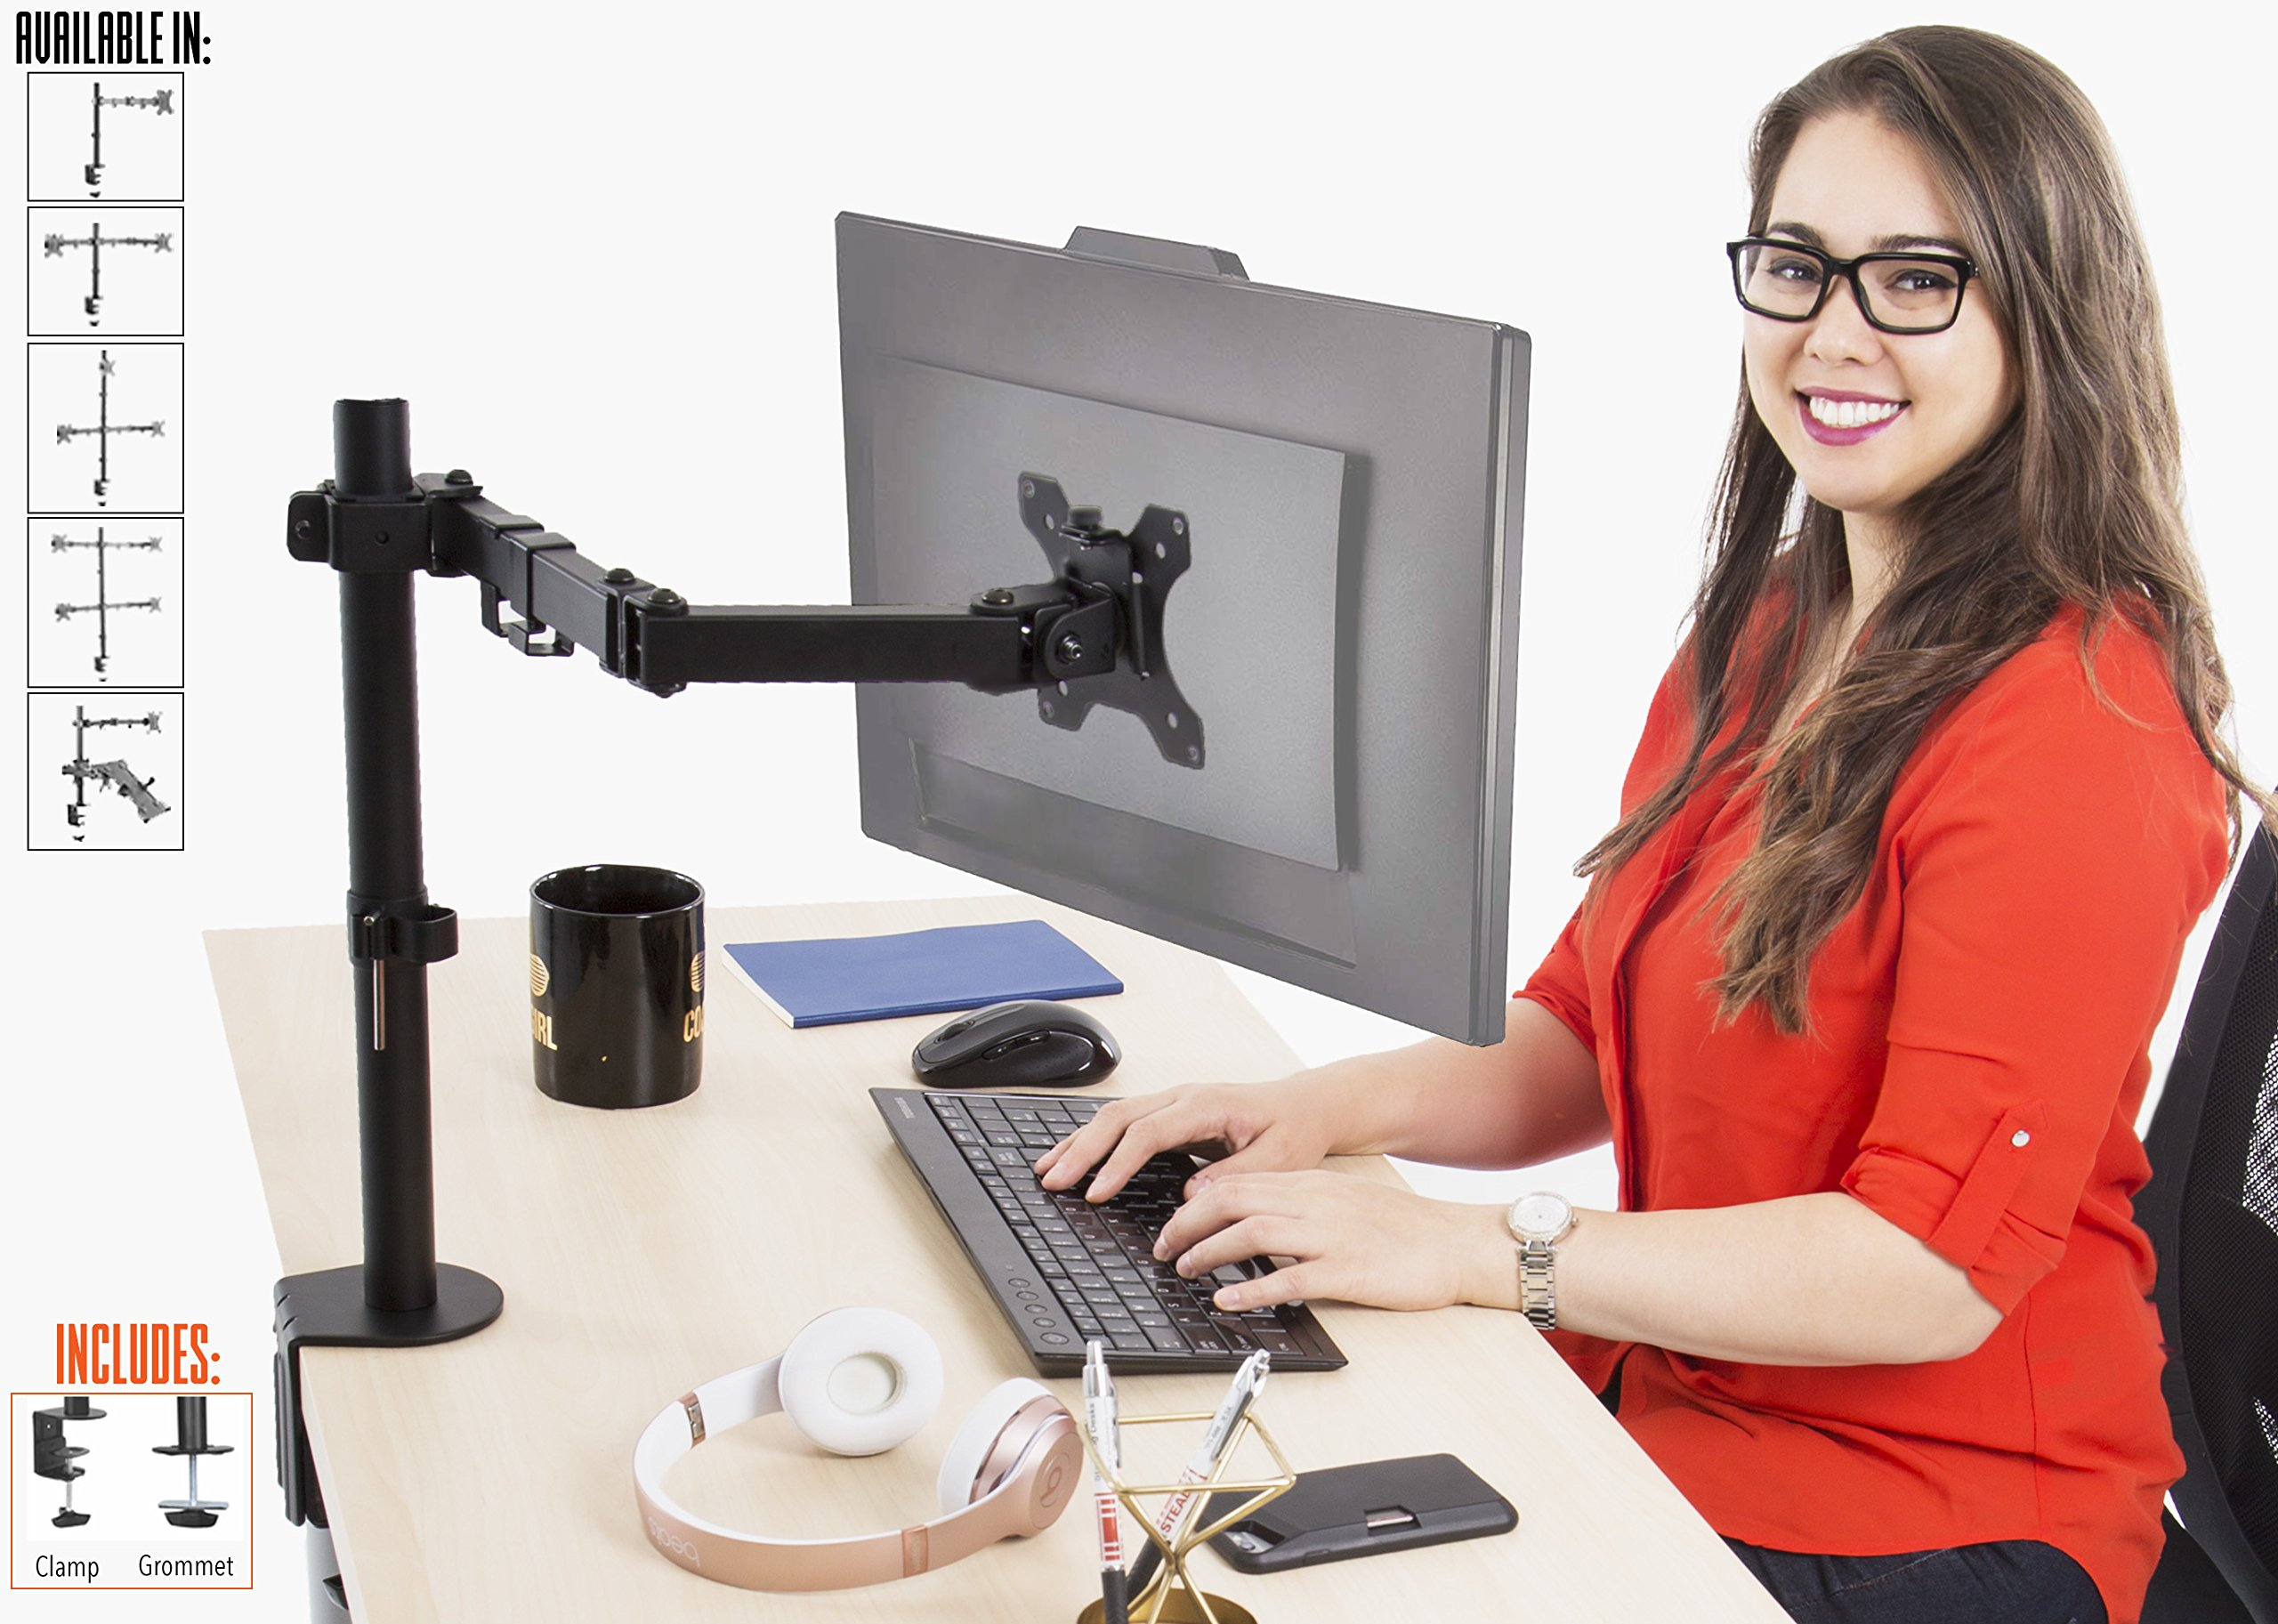 Stand Steady Single Monitor Desk Mount Stand | Height Adjustable 1 Monitor Stand with Full Articulation and Desk Clamp or Grommet | VESA Mount Fits Most LCD/LED Monitors 13-32 inches (1 Arm Clamp)